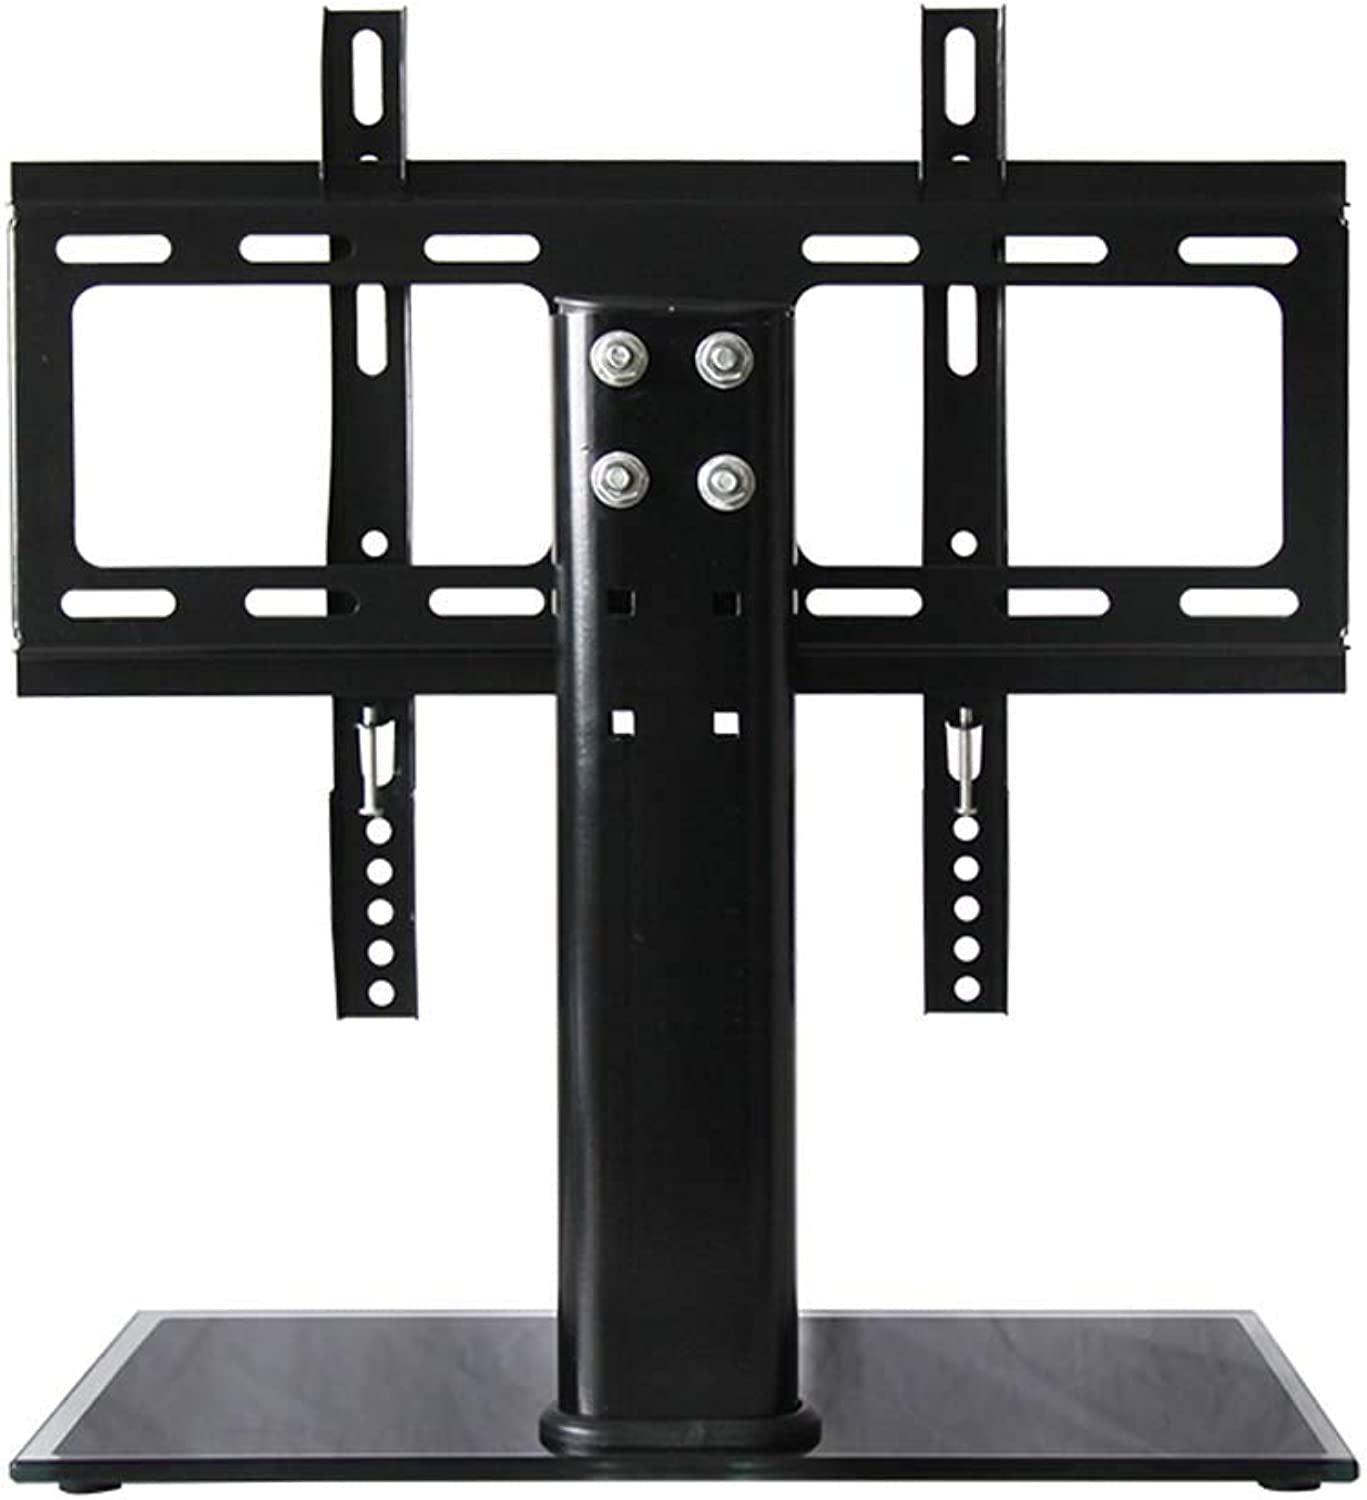 Gona Table Top TV Pedestal Stand - Furniture Universal TV Entertainment Center, for 26-32 Inch LED LCD Plasma & Curved Screens Up to VESA 300X400mm and 40 Kg Load Capacity